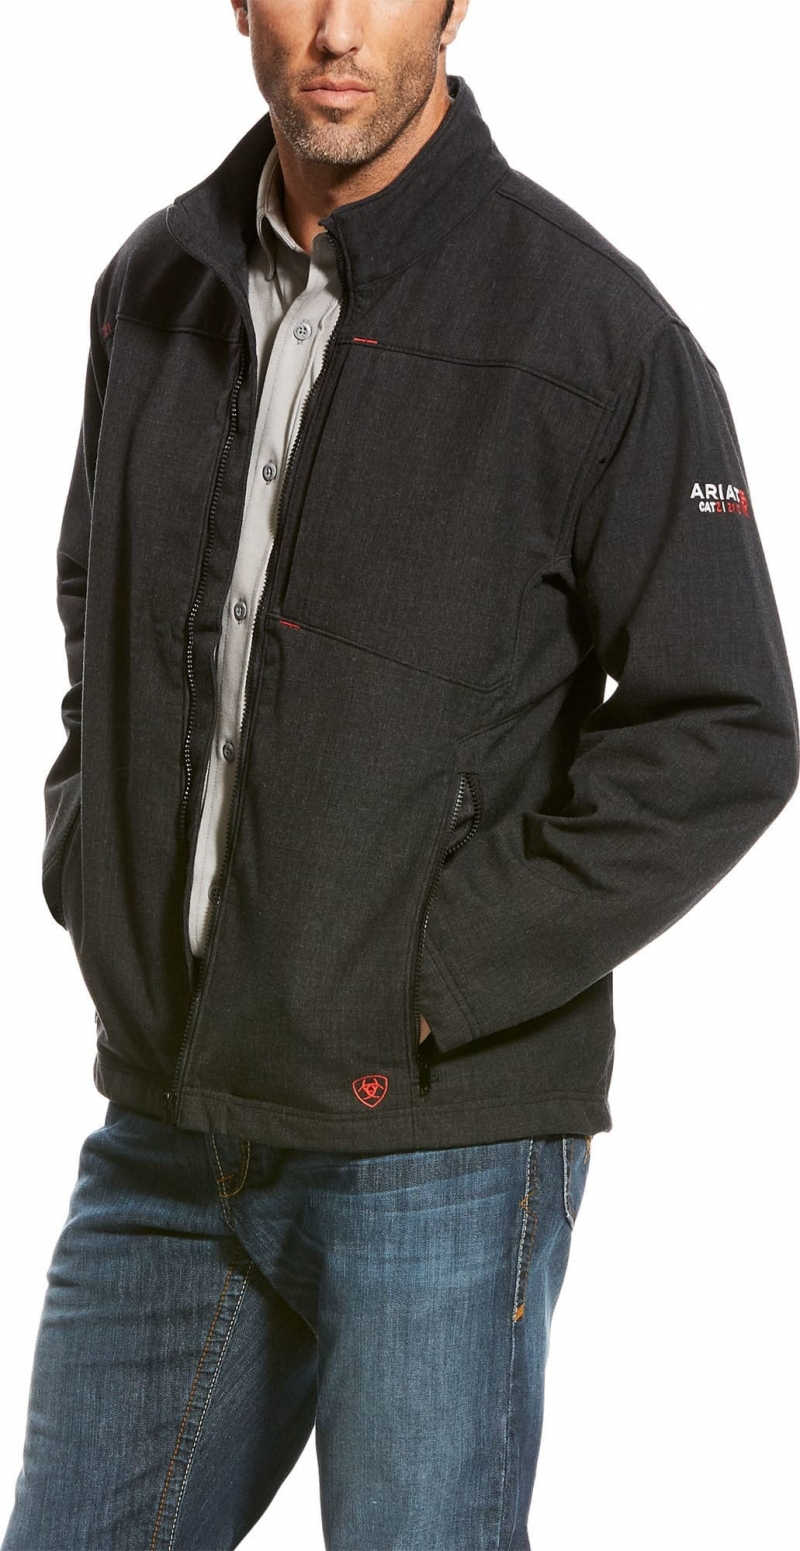 Ariat FR Vernon Softshell Jacket - Black